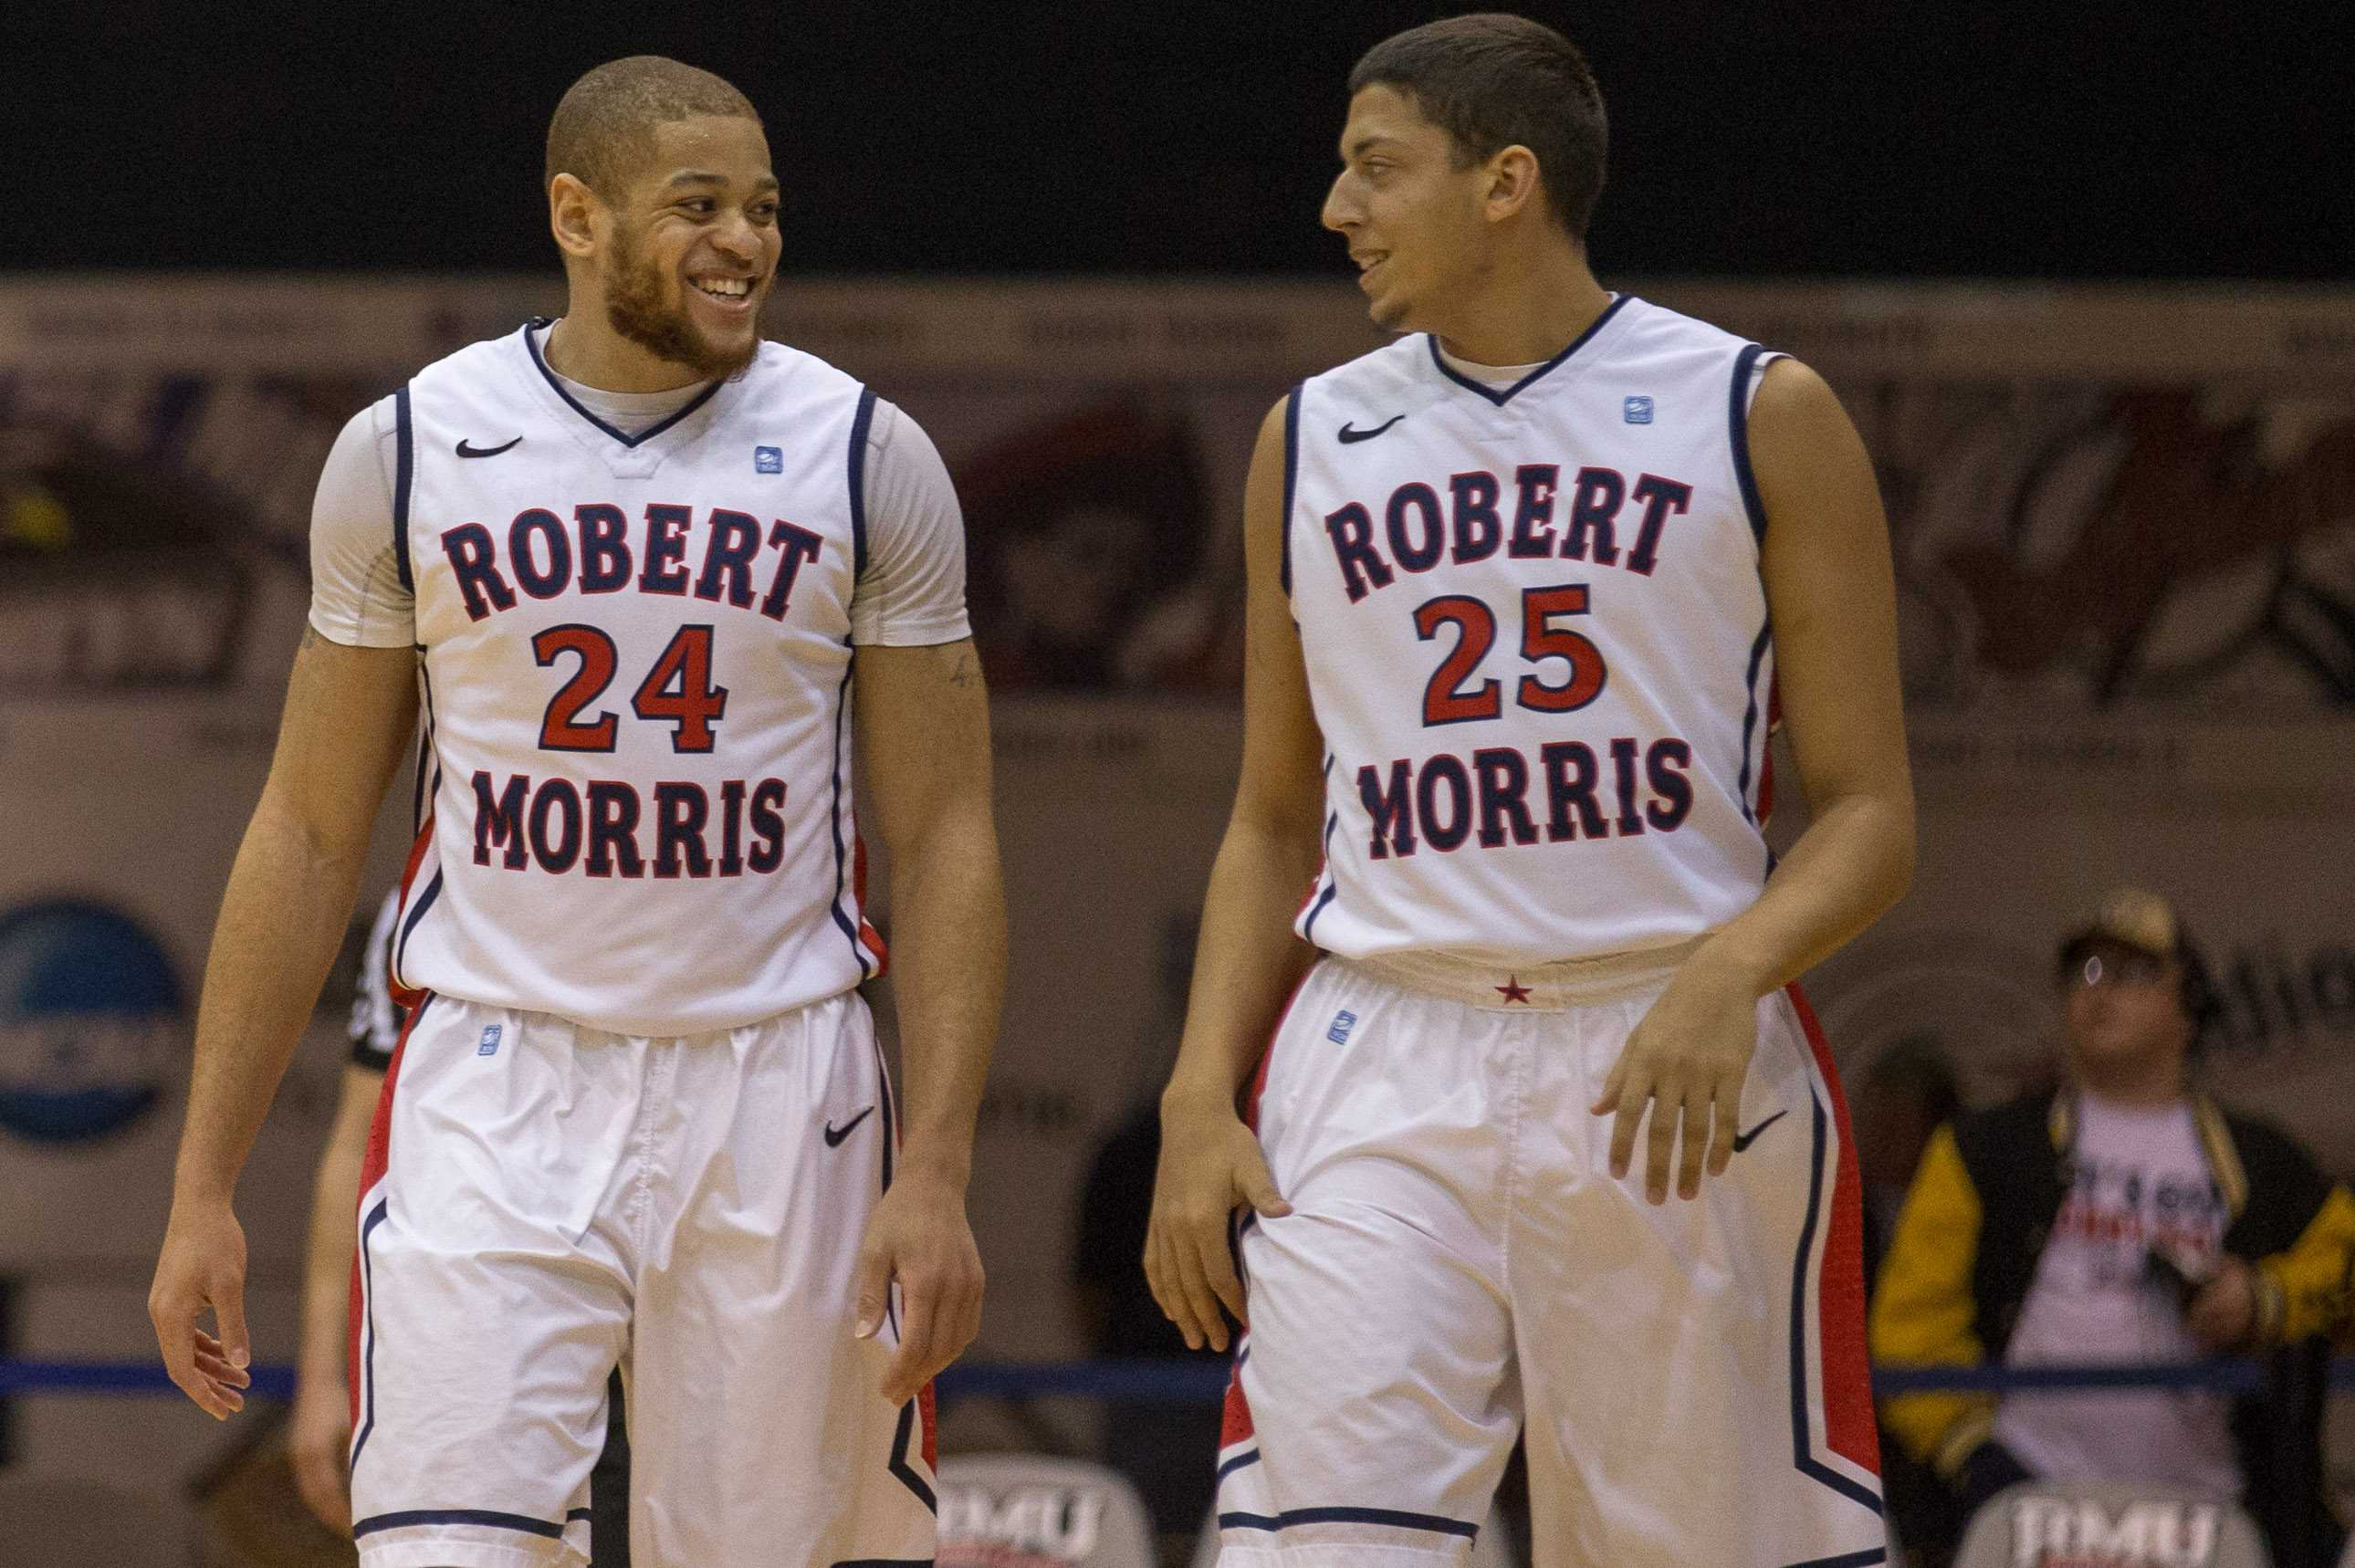 Conrad Stephens (right) received his first playing time in an RMU uniform during the Colonials' 22 point win over FDU.